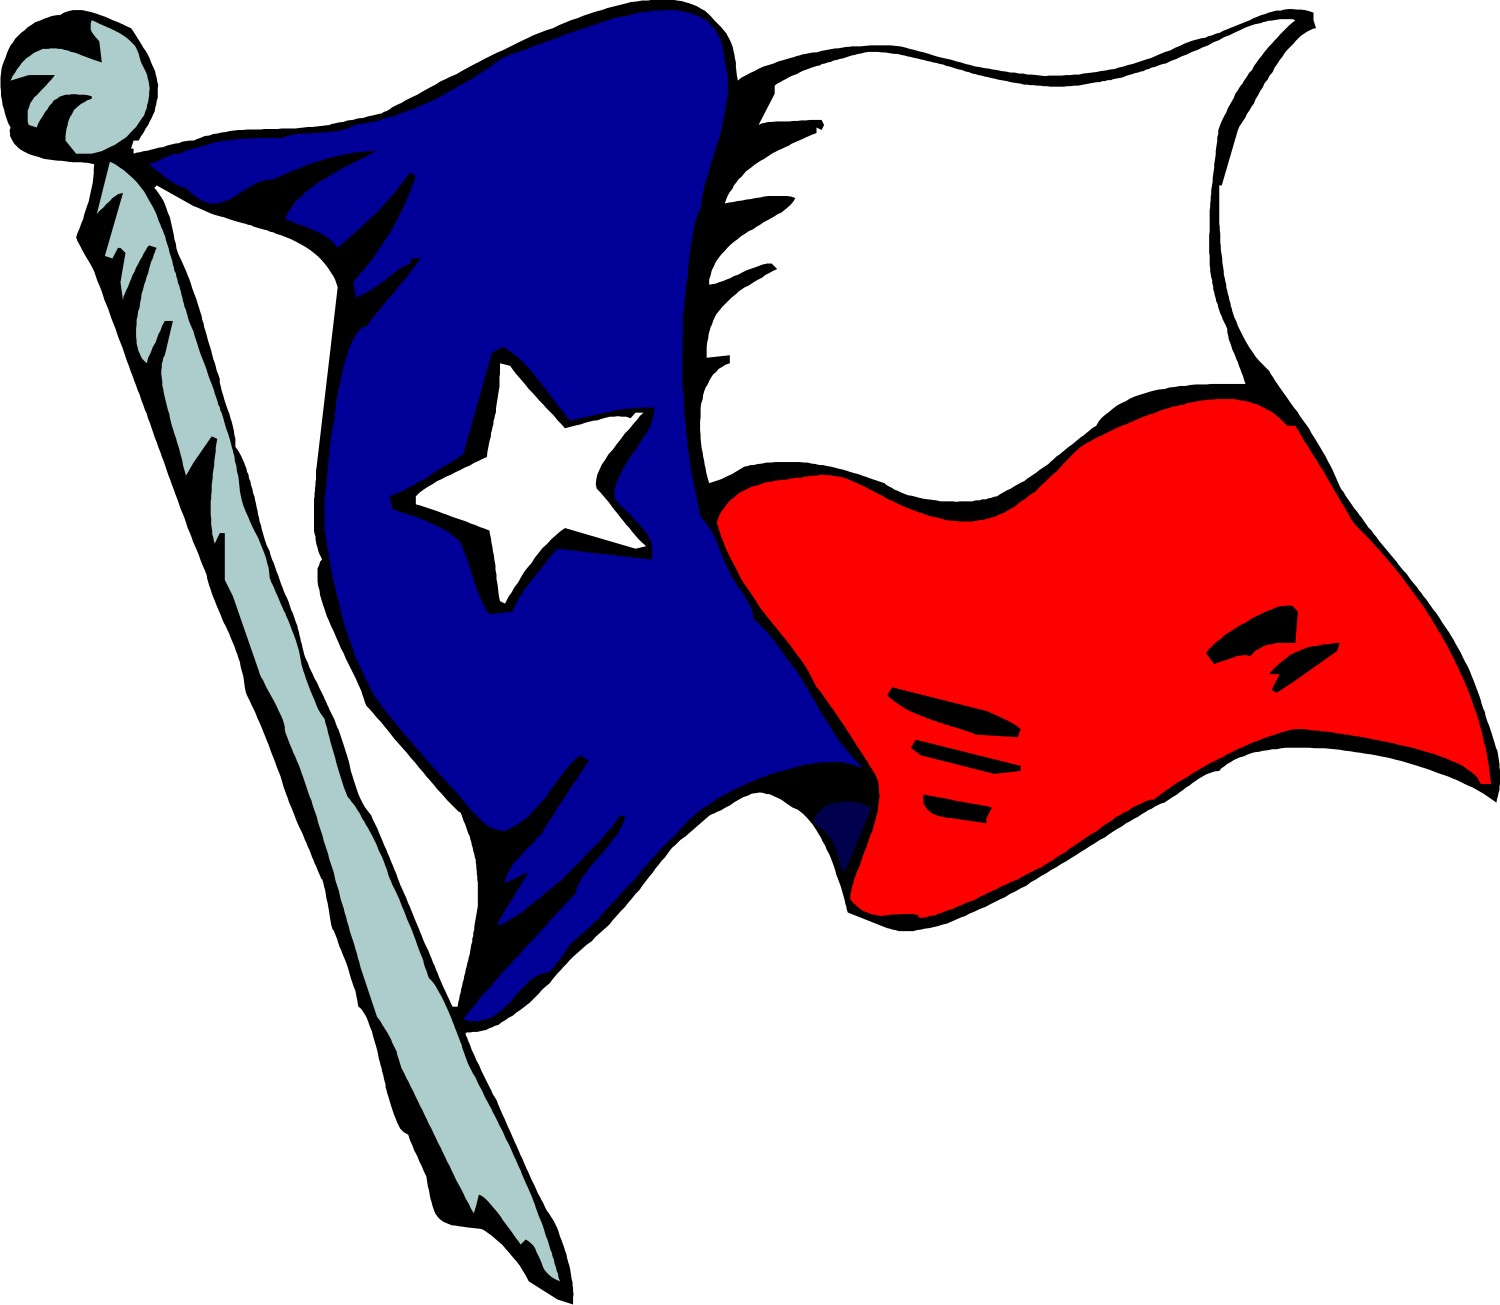 Vintage texas free clipart image black and white library Images Of Texas Flag | Free download best Images Of Texas ... image black and white library